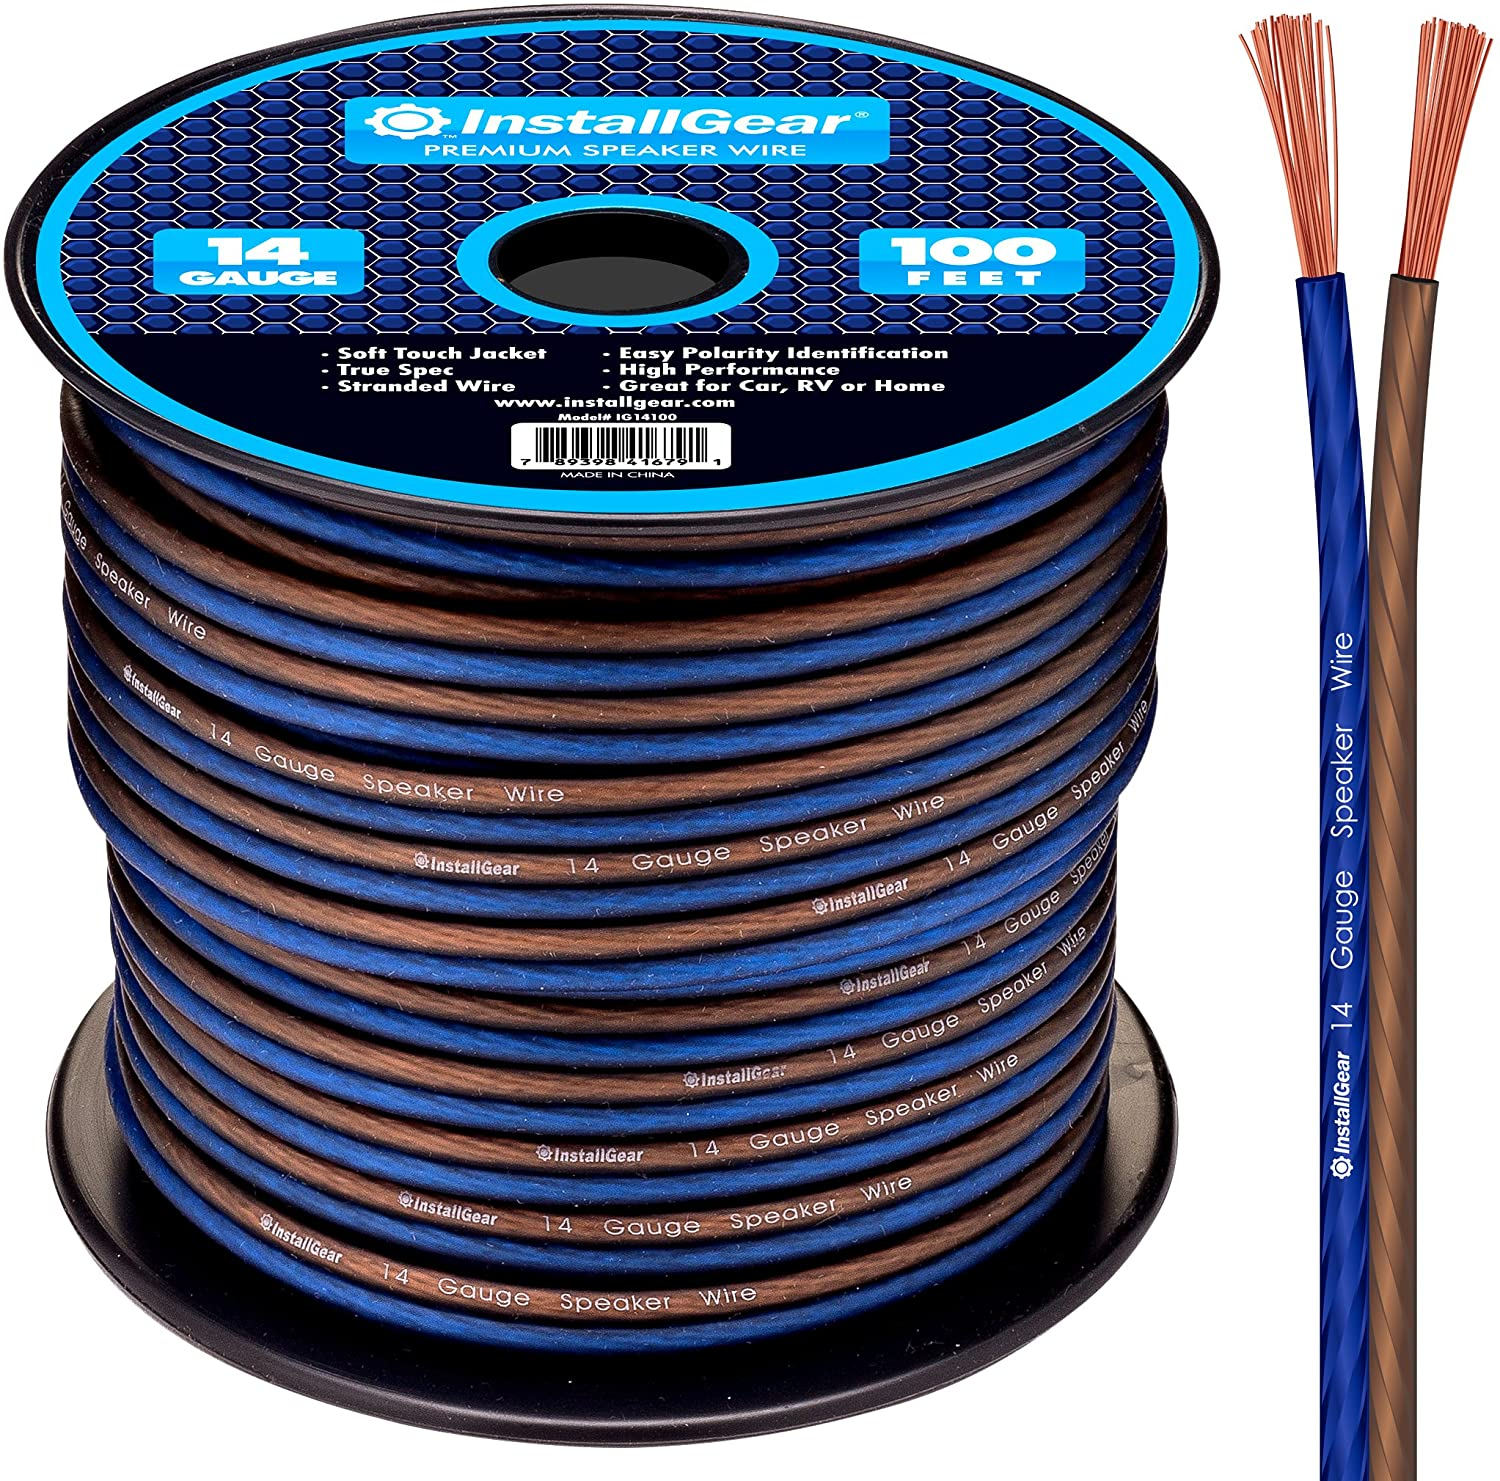 InstallGear 14 Gauge AWG 100ft Speaker Wire True Spec and Soft Touch Cable: Electronics